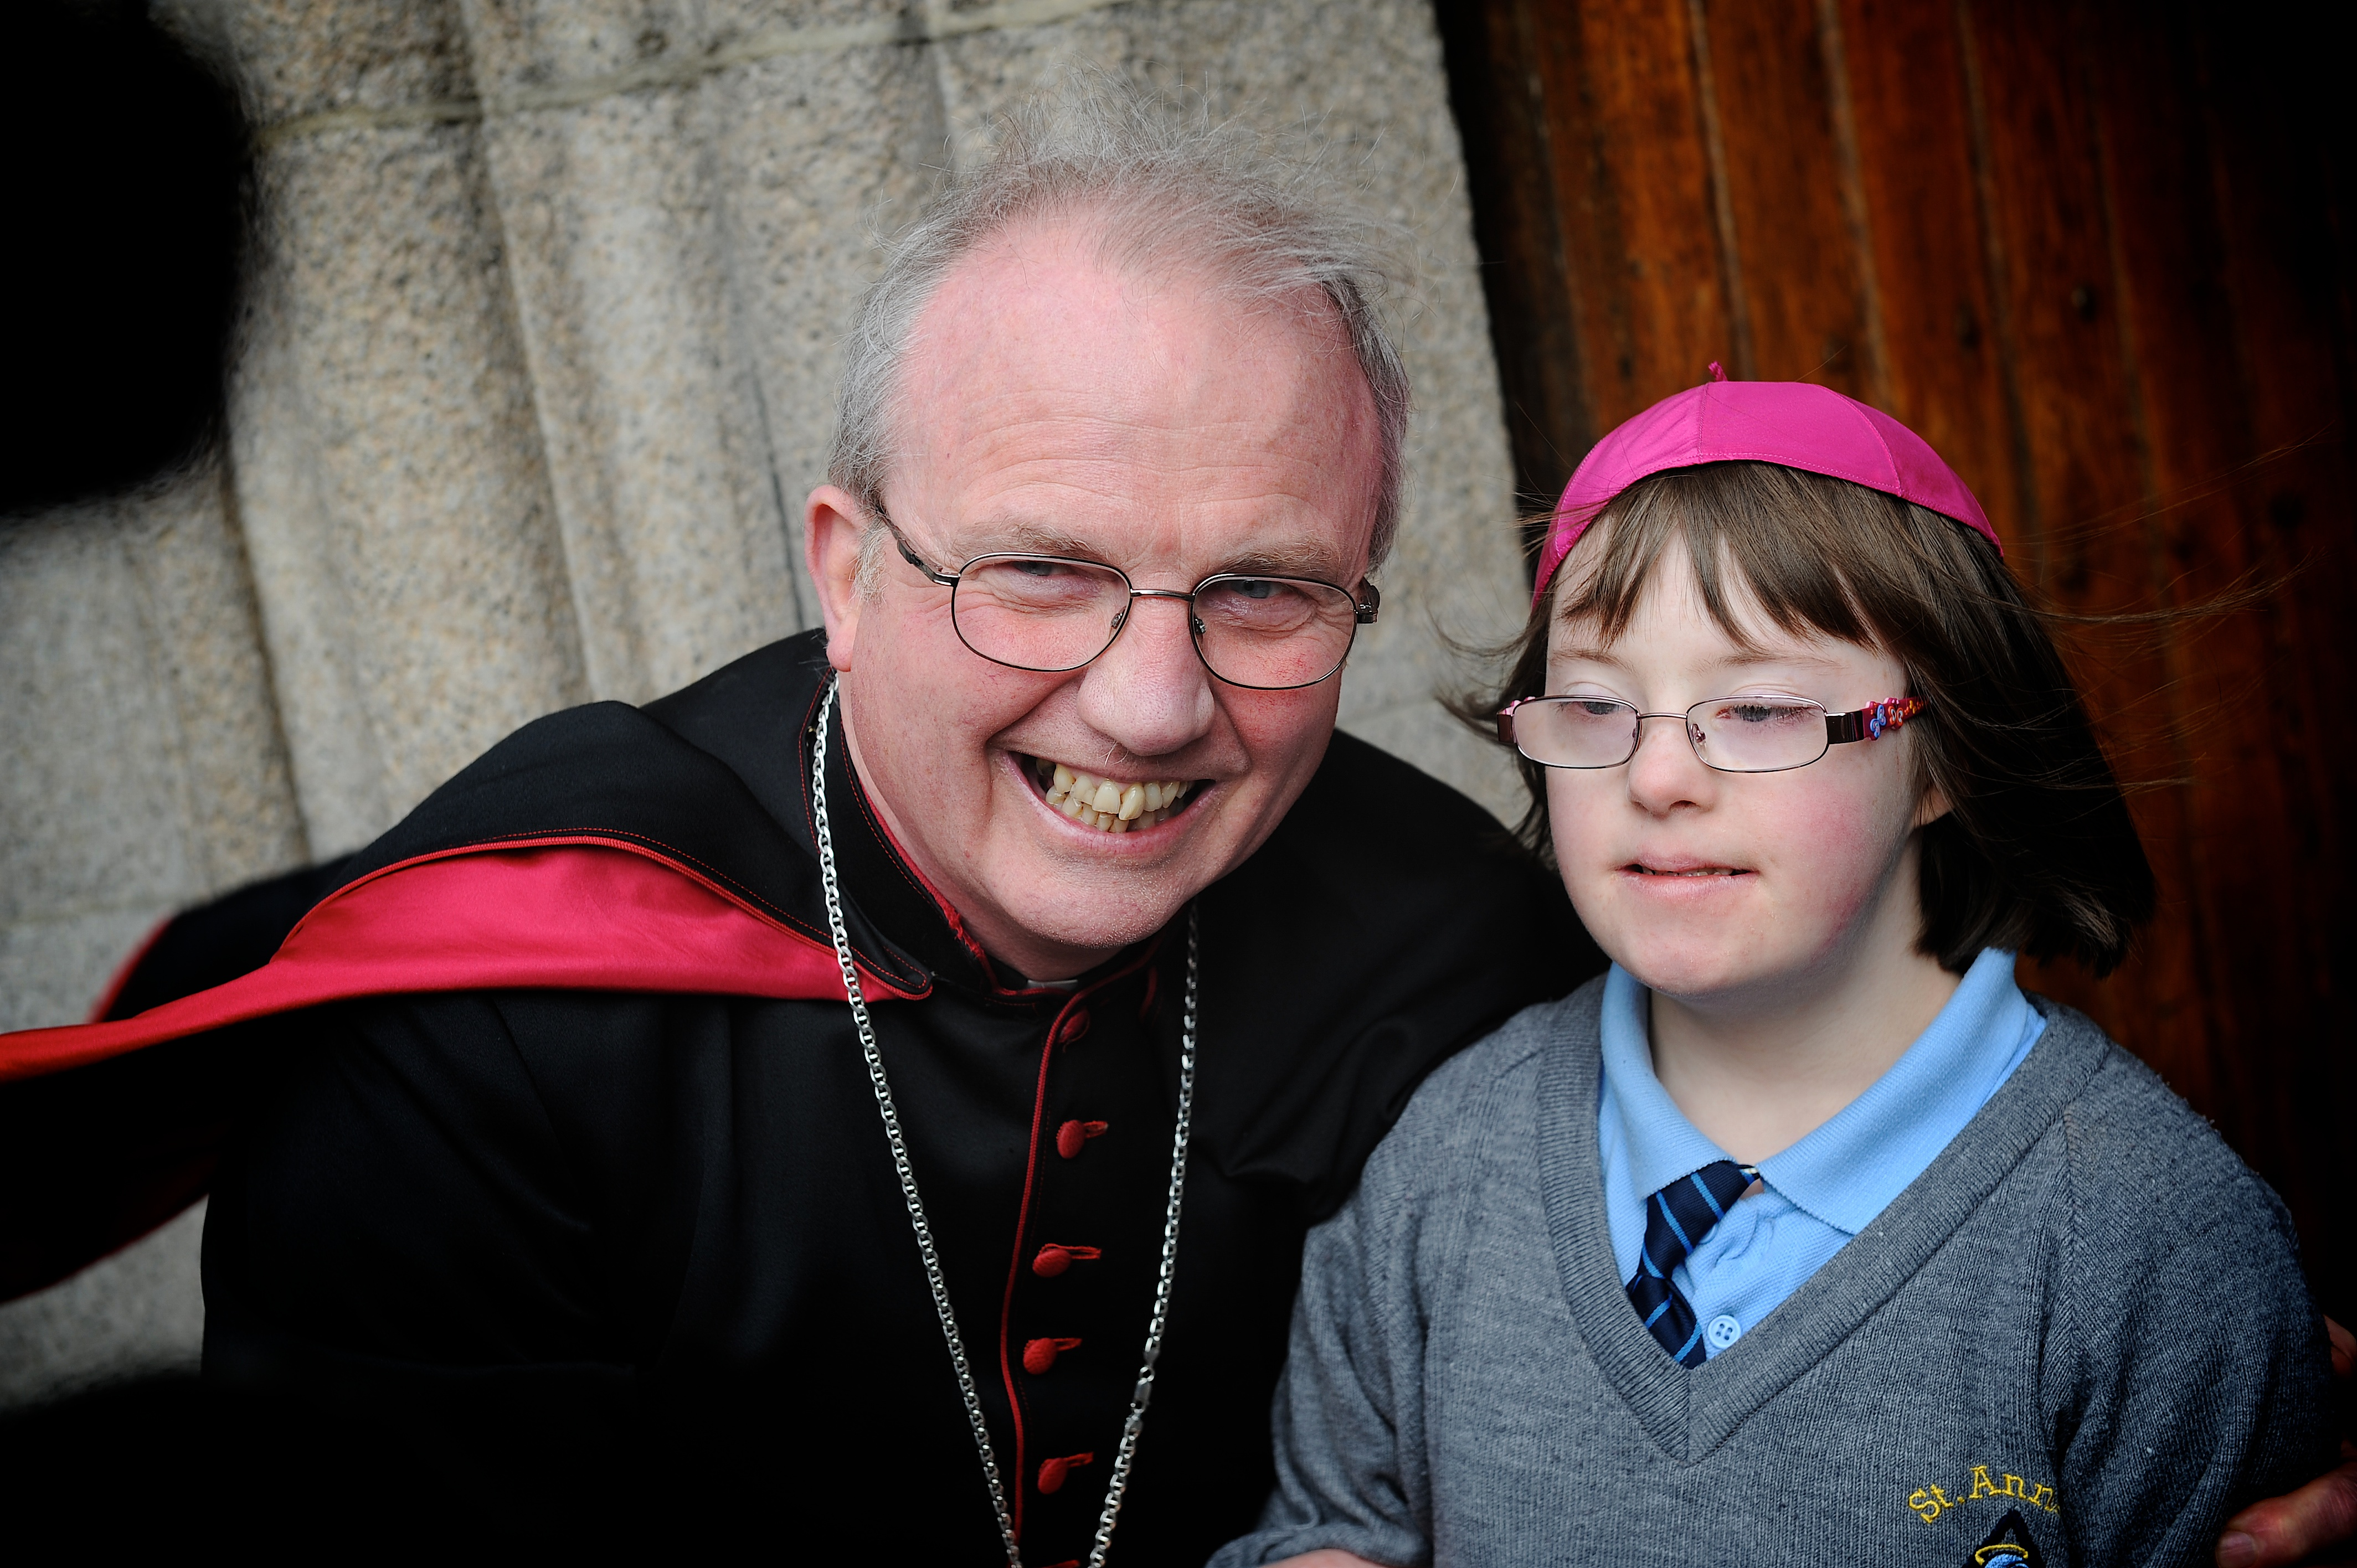 25 Feb 2014 Bishop Donal McKeown with St Anne's pupil Emma McDaid